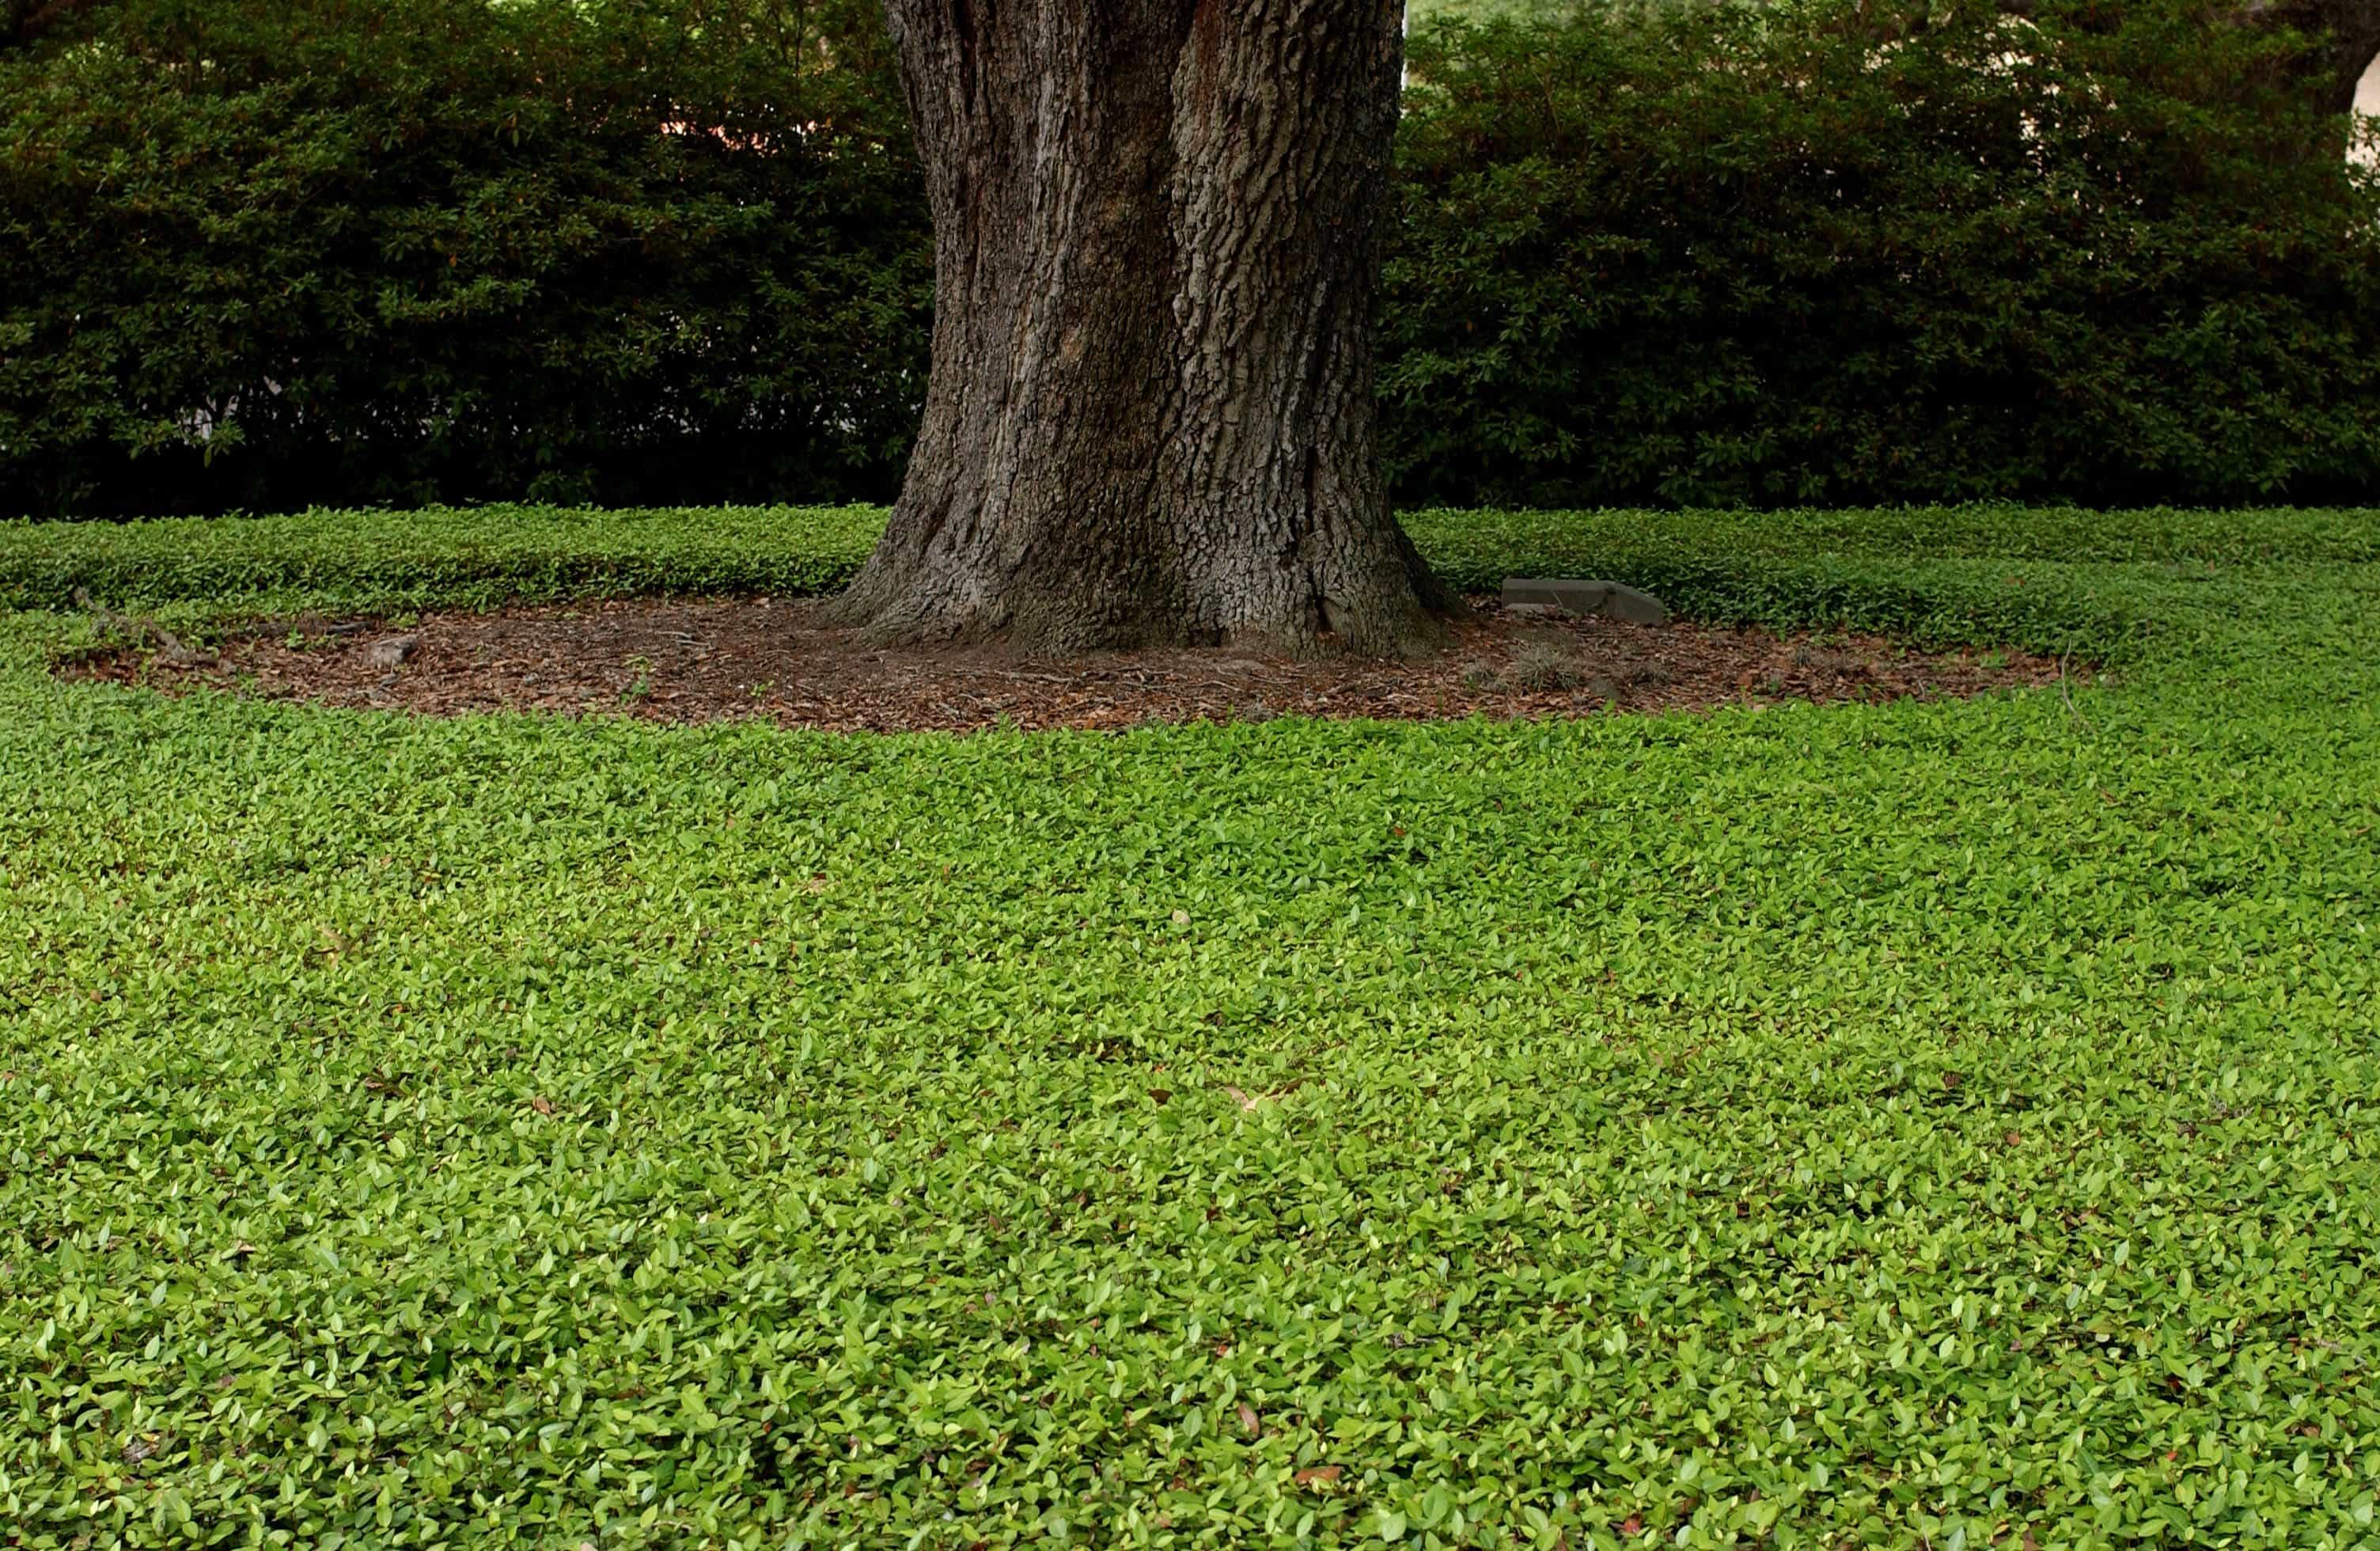 bore ground cover turf grass outdoor plants ground cover